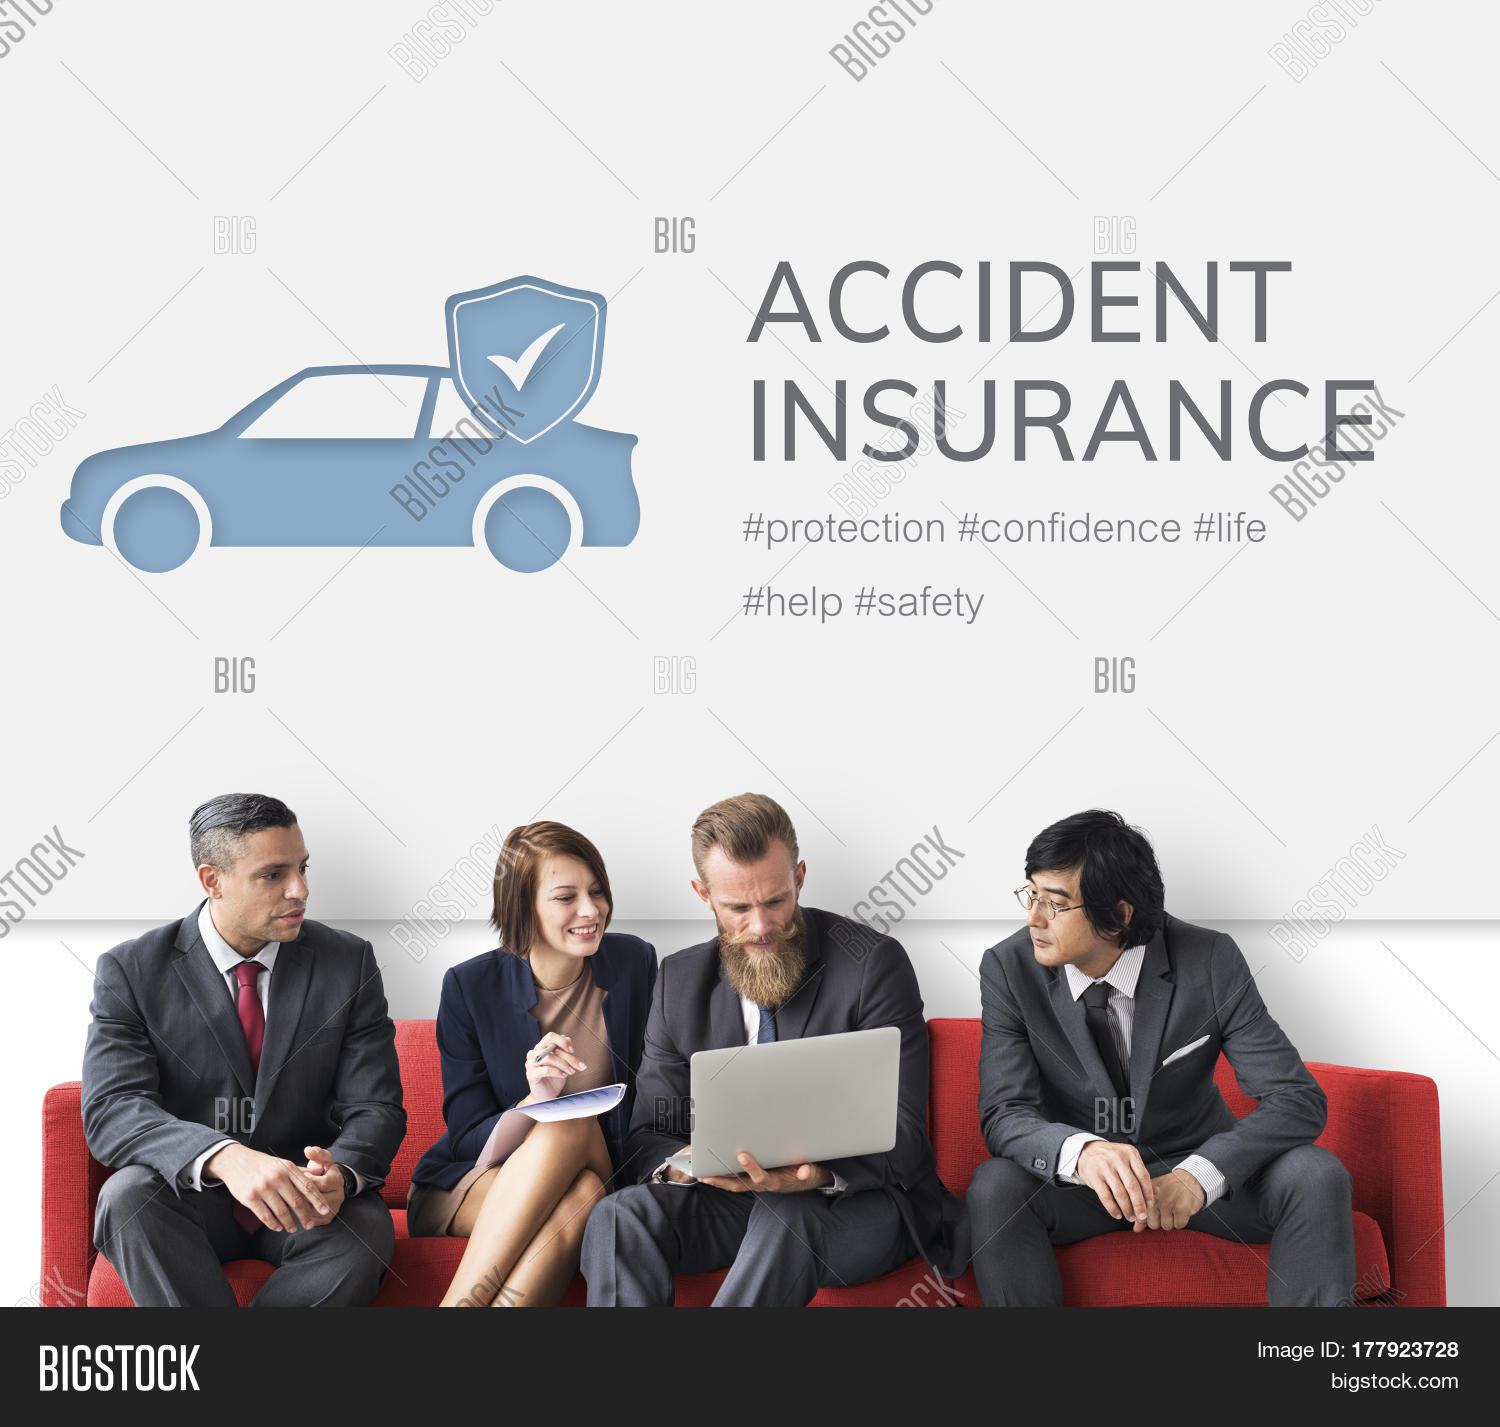 Car Insurance Coverage Accident Image & Photo